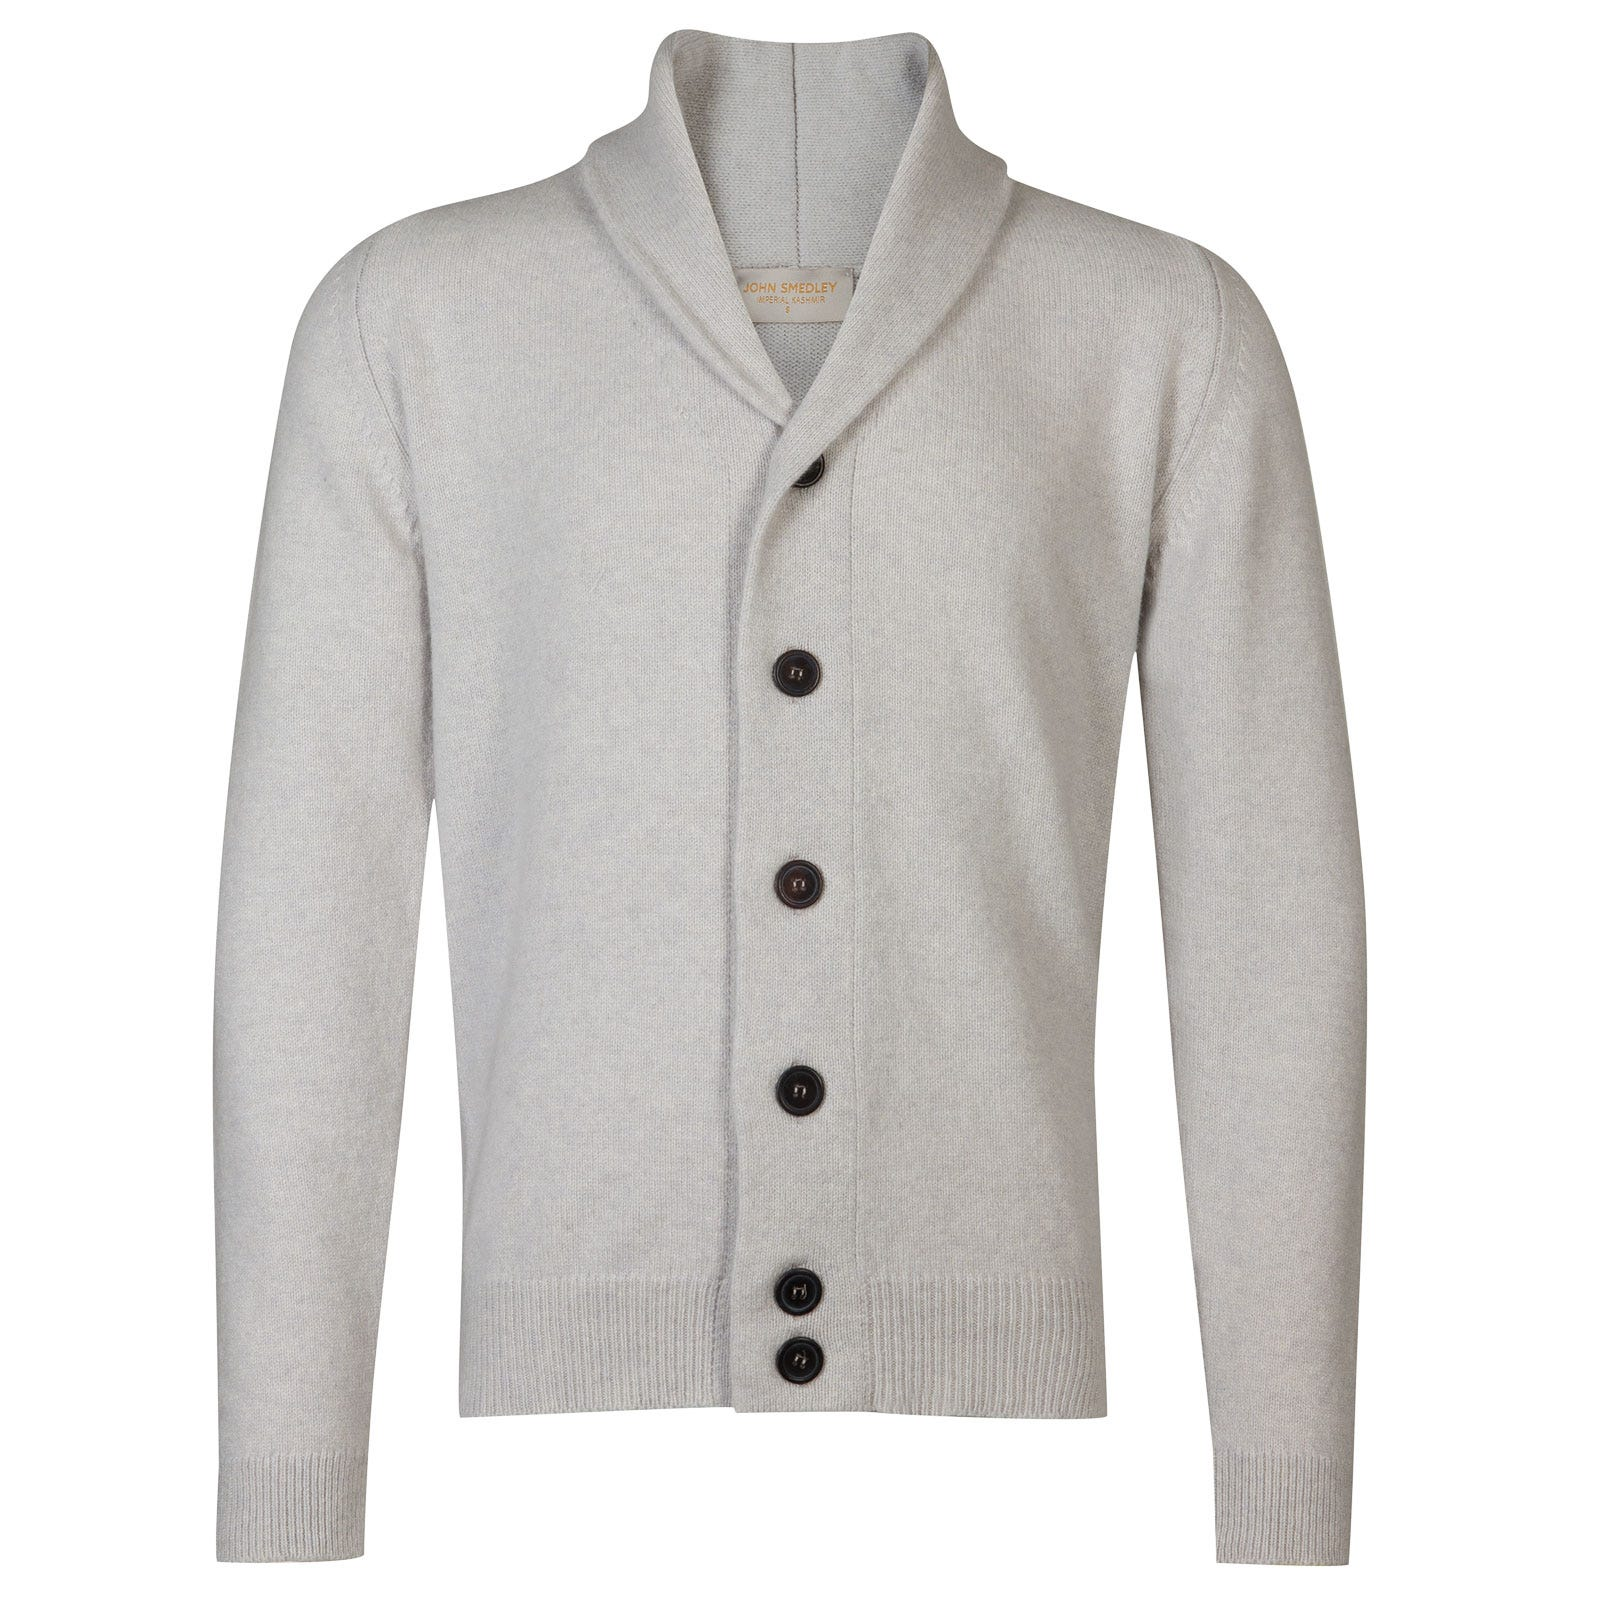 John Smedley patterson Wool and Cashmere Jacket in Soft Grey-XXL